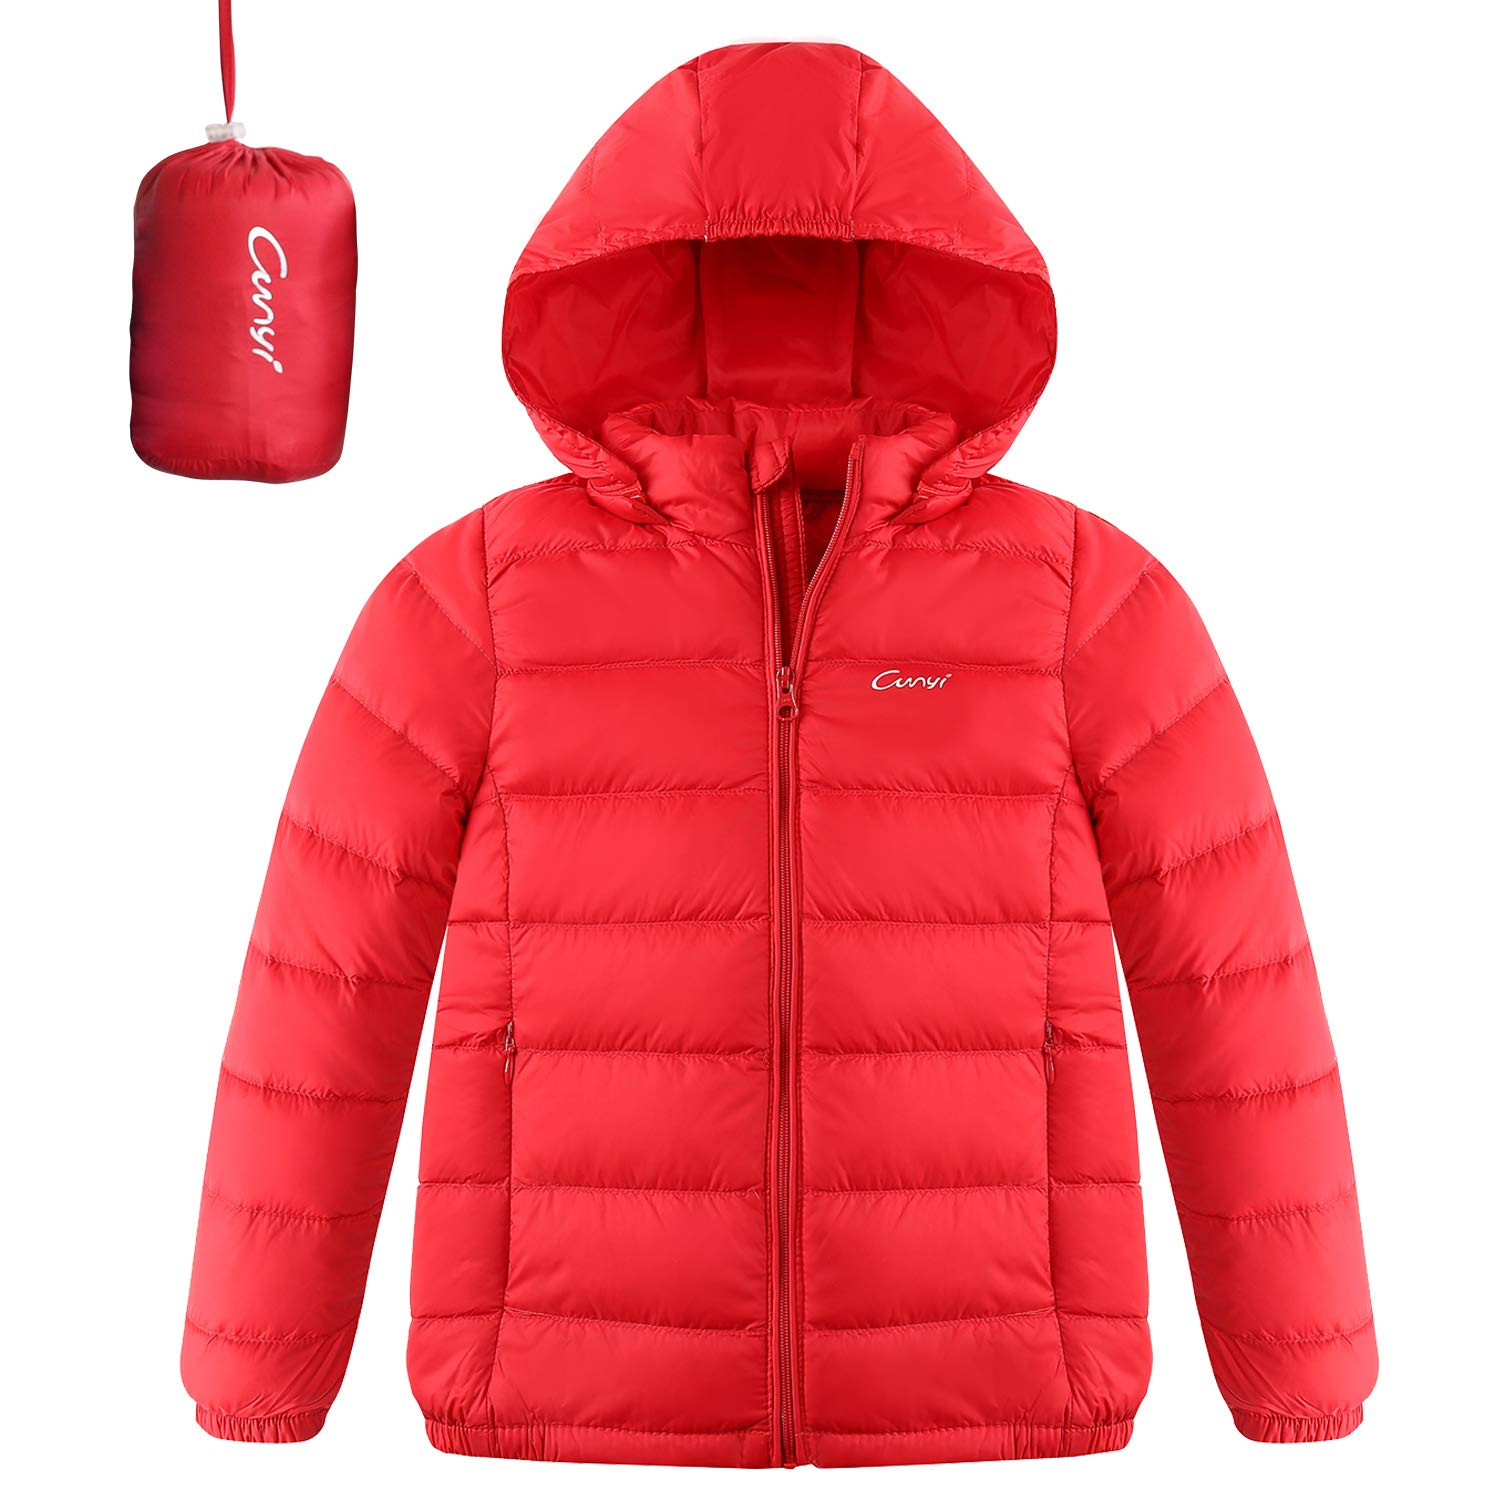 CUNYI Boys Girls Hooded Portable Lightweight Down Jacket Coats, Red, 4-5 T/ 110